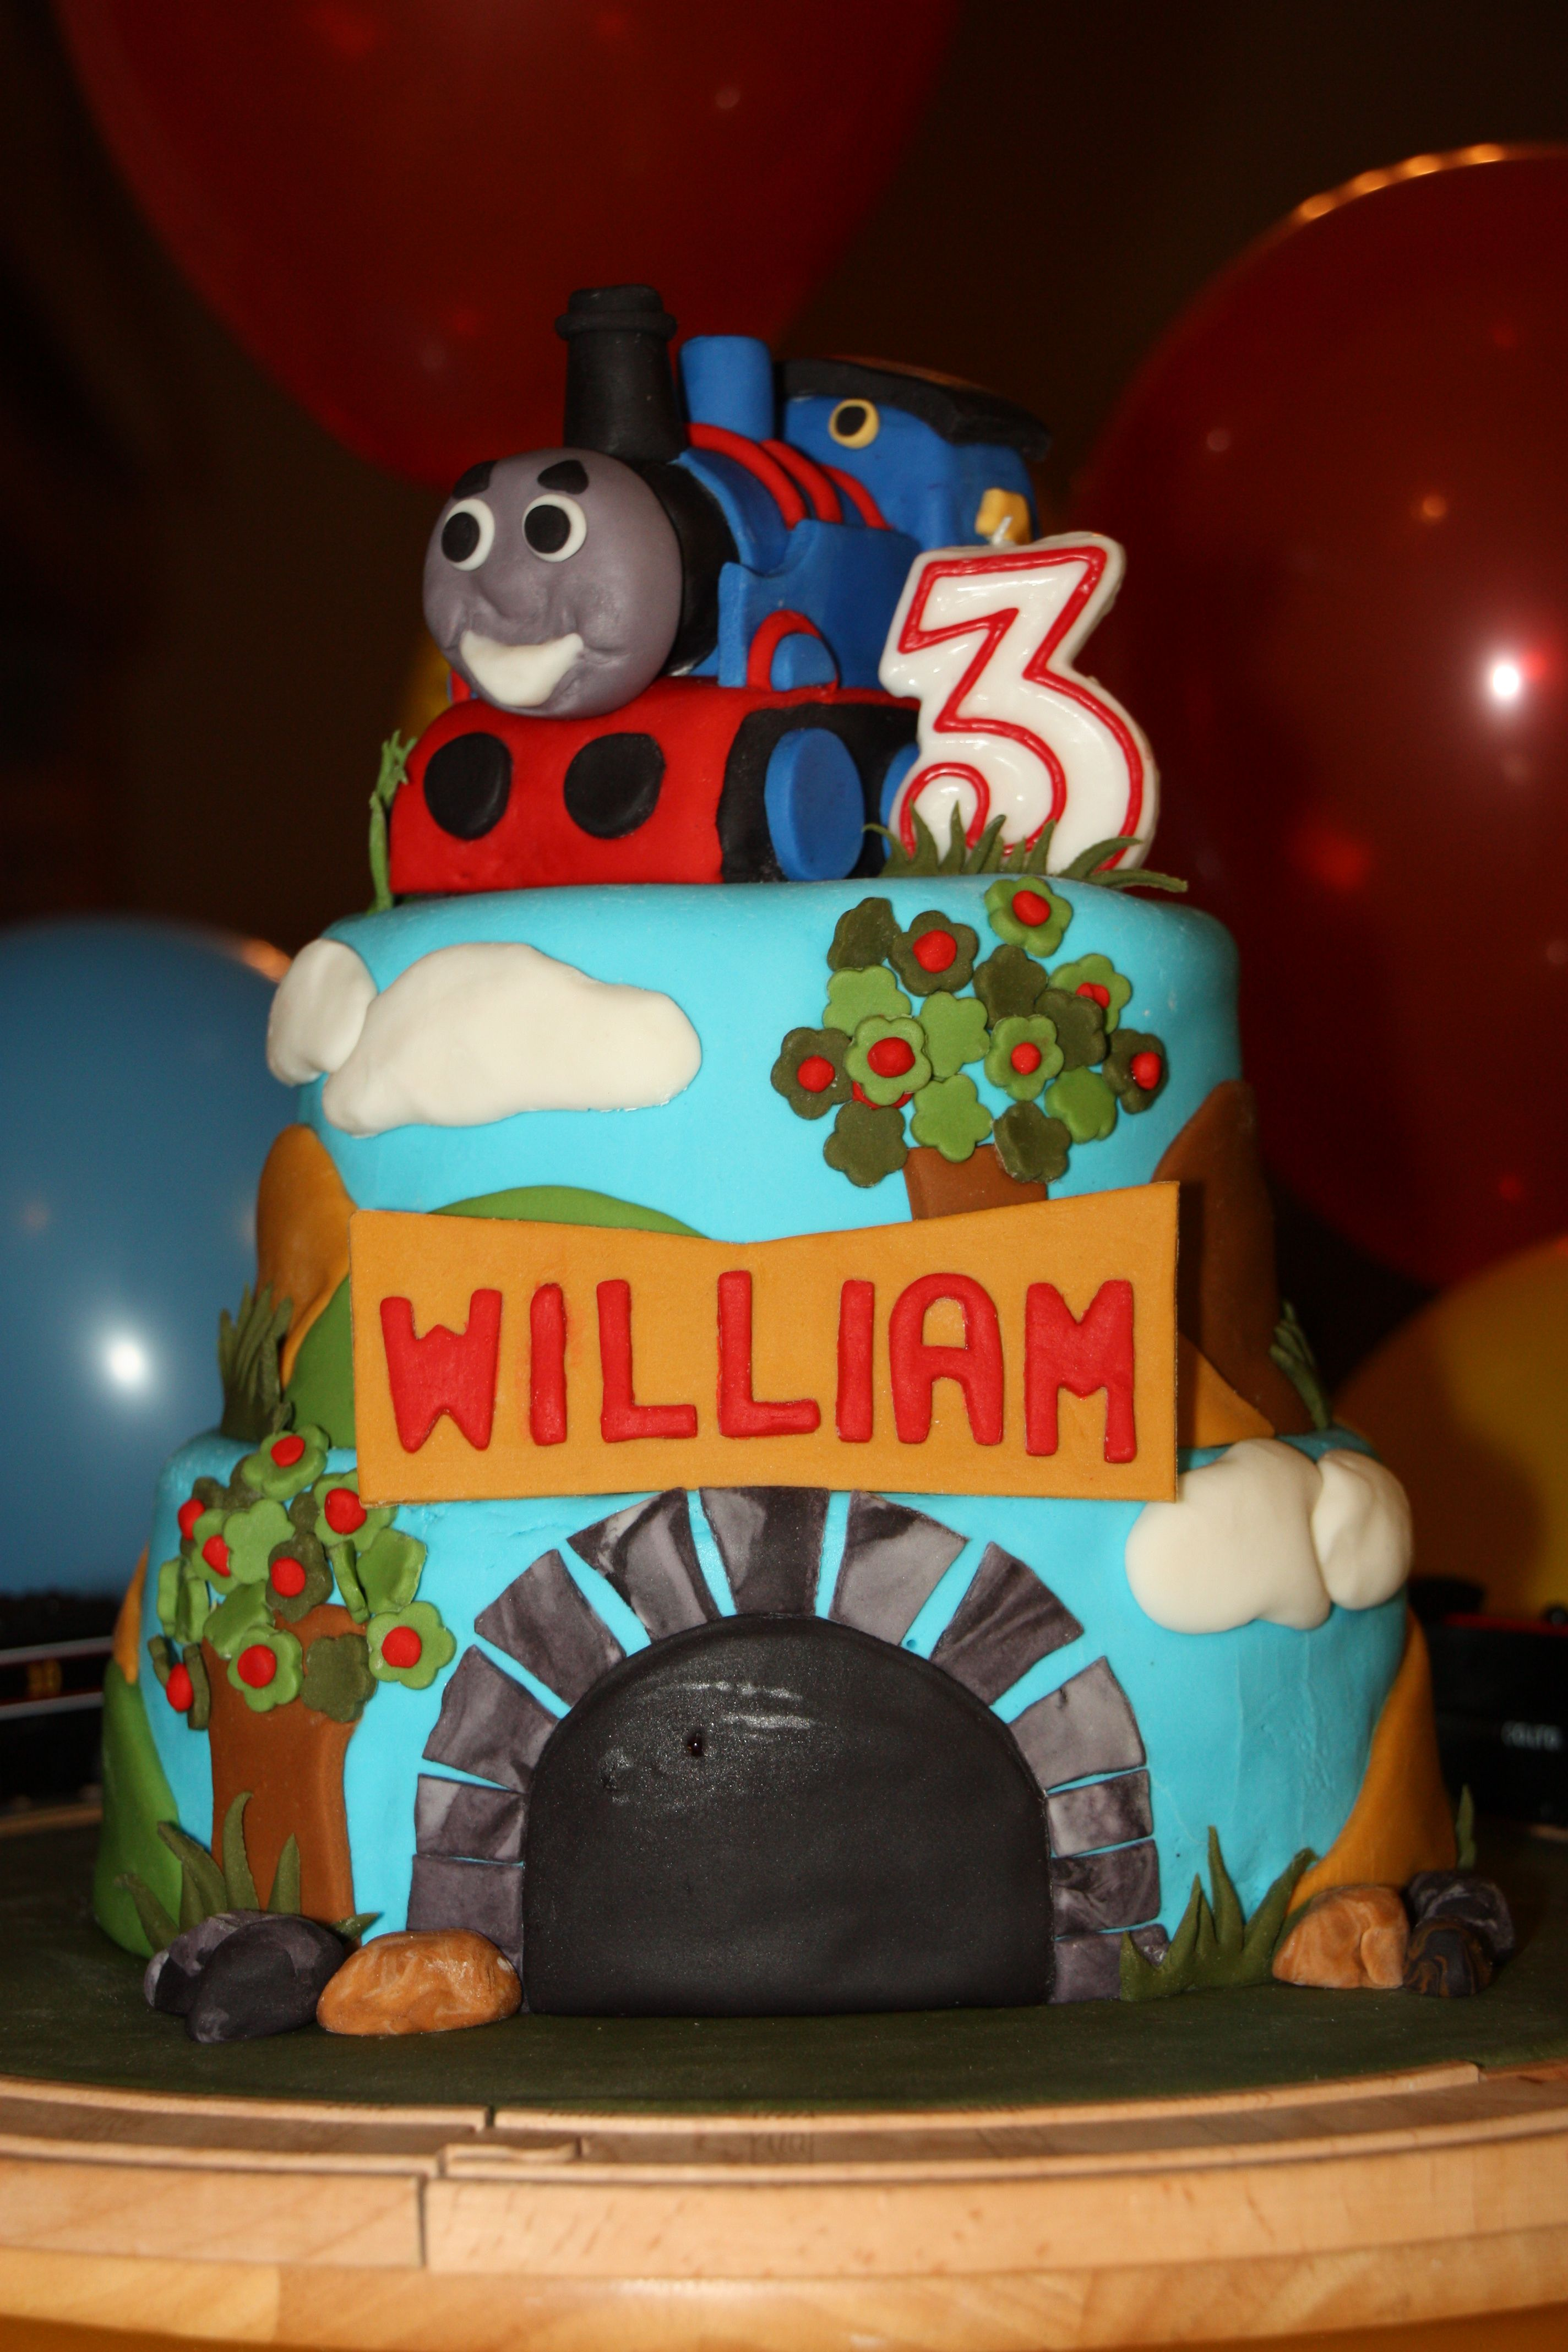 thomas the tank engine cake for a 3 year old birthday boy! this was